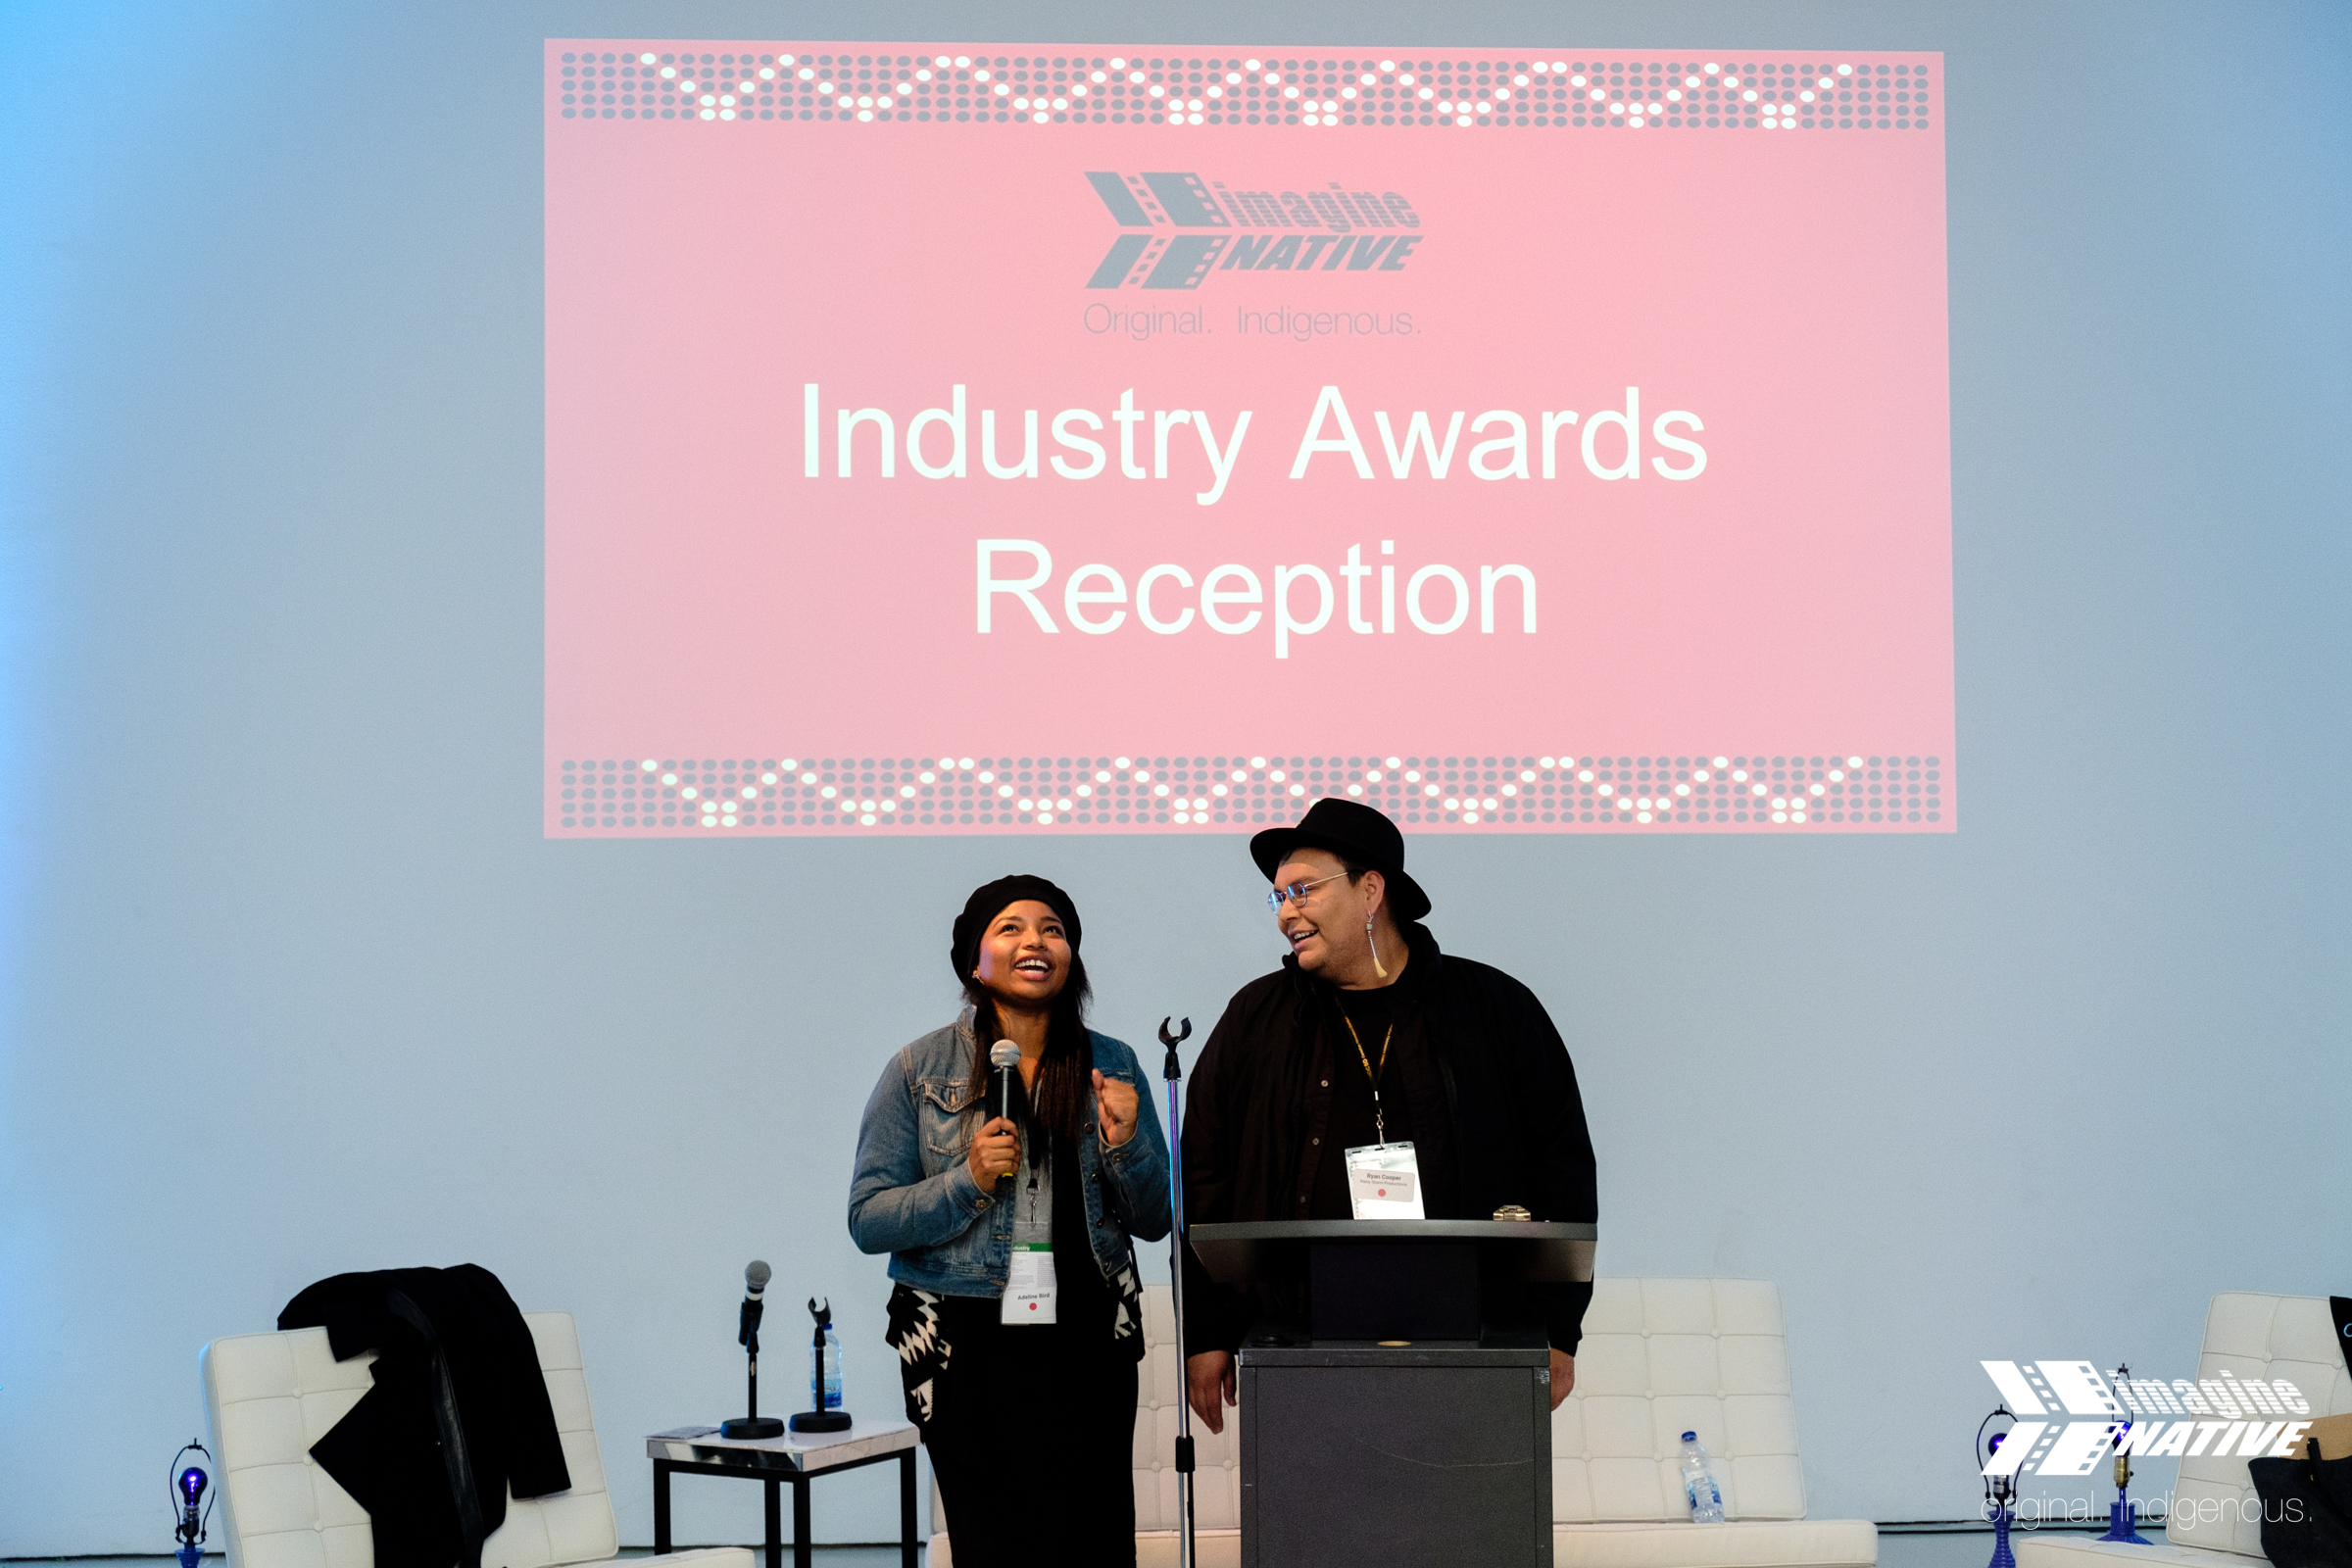 Netflix + You and International Networking Day - Running October 22 - 26, 2019, the Industry Days at the 20th imagineNATIVE Film + Media Arts Festival presents over 30 panels, workshops, networking and social activities specifically focused on advancing the careers, artistry, and networks of Indigenous screen content creators.read more…